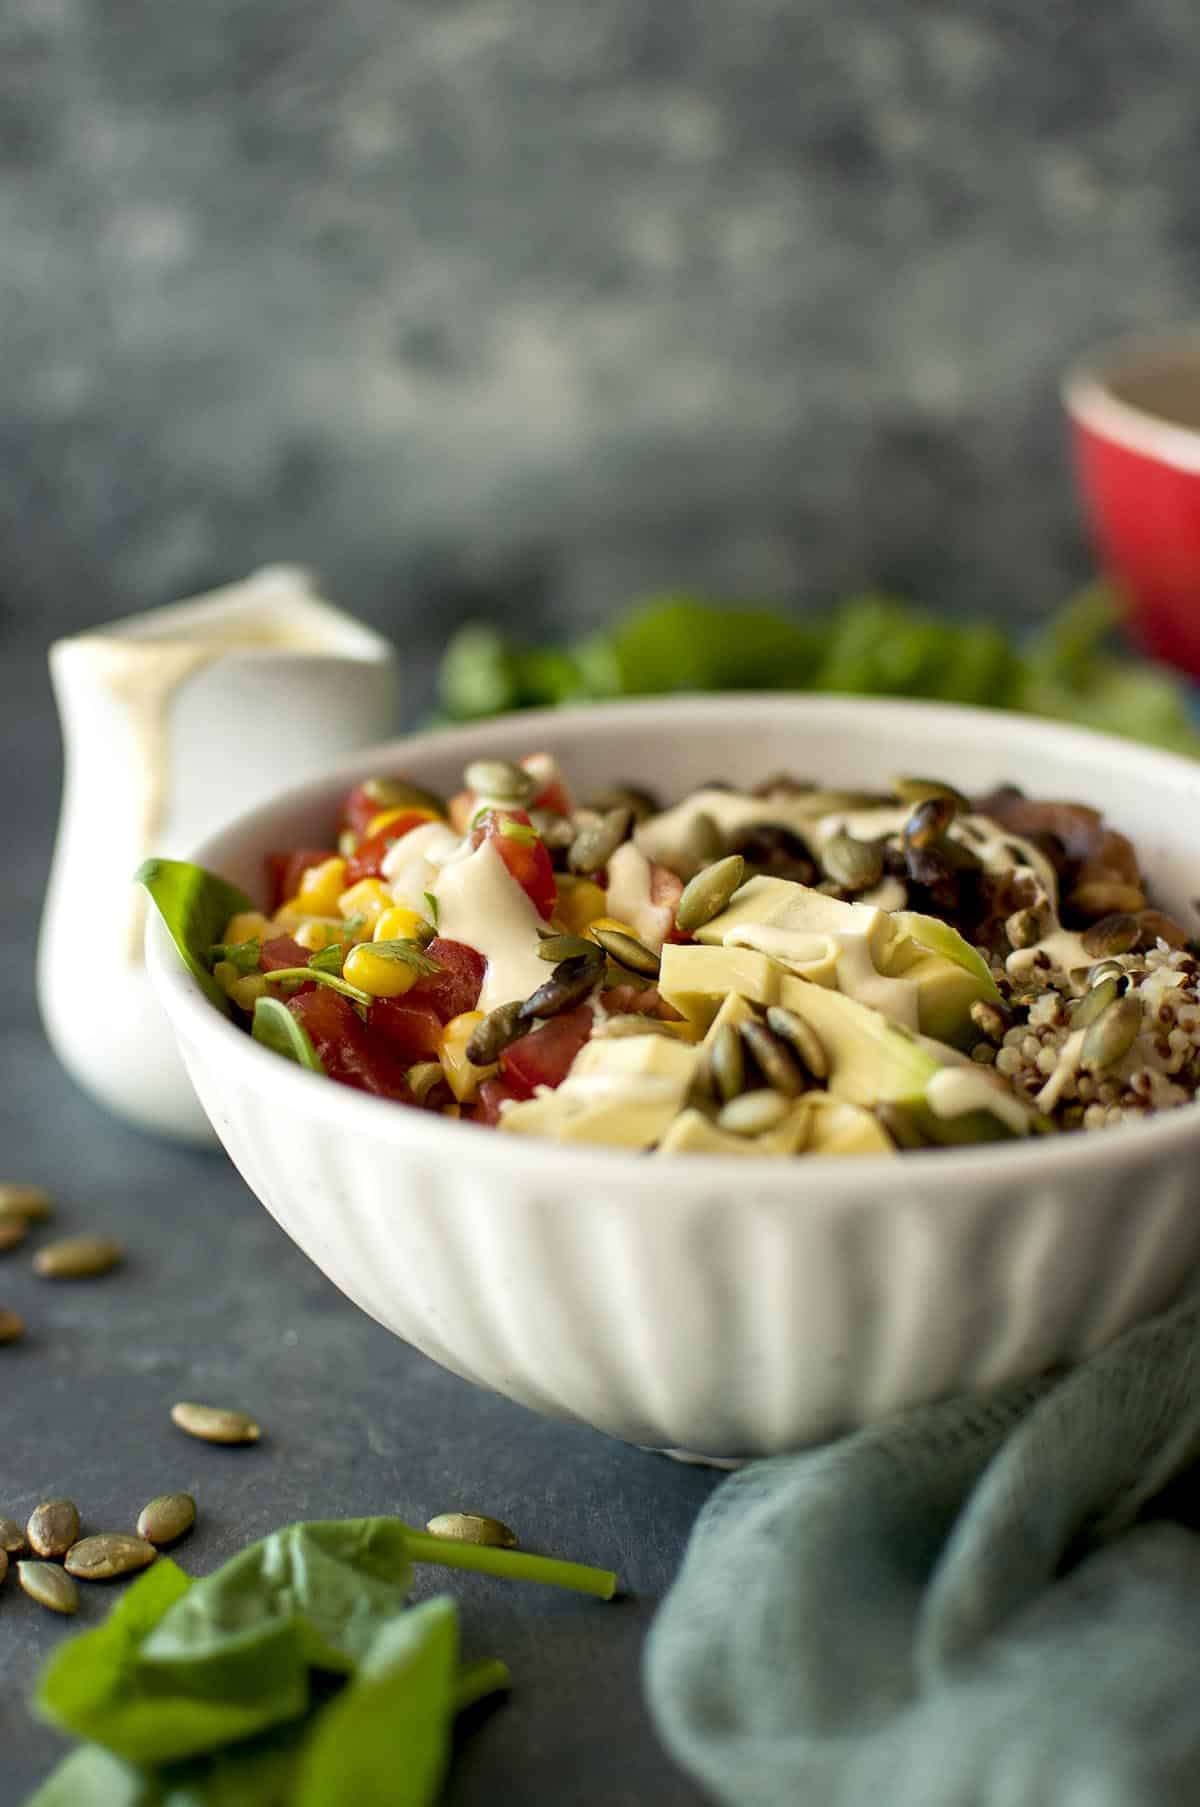 Vegan Grain Bowl with Cashew Queso